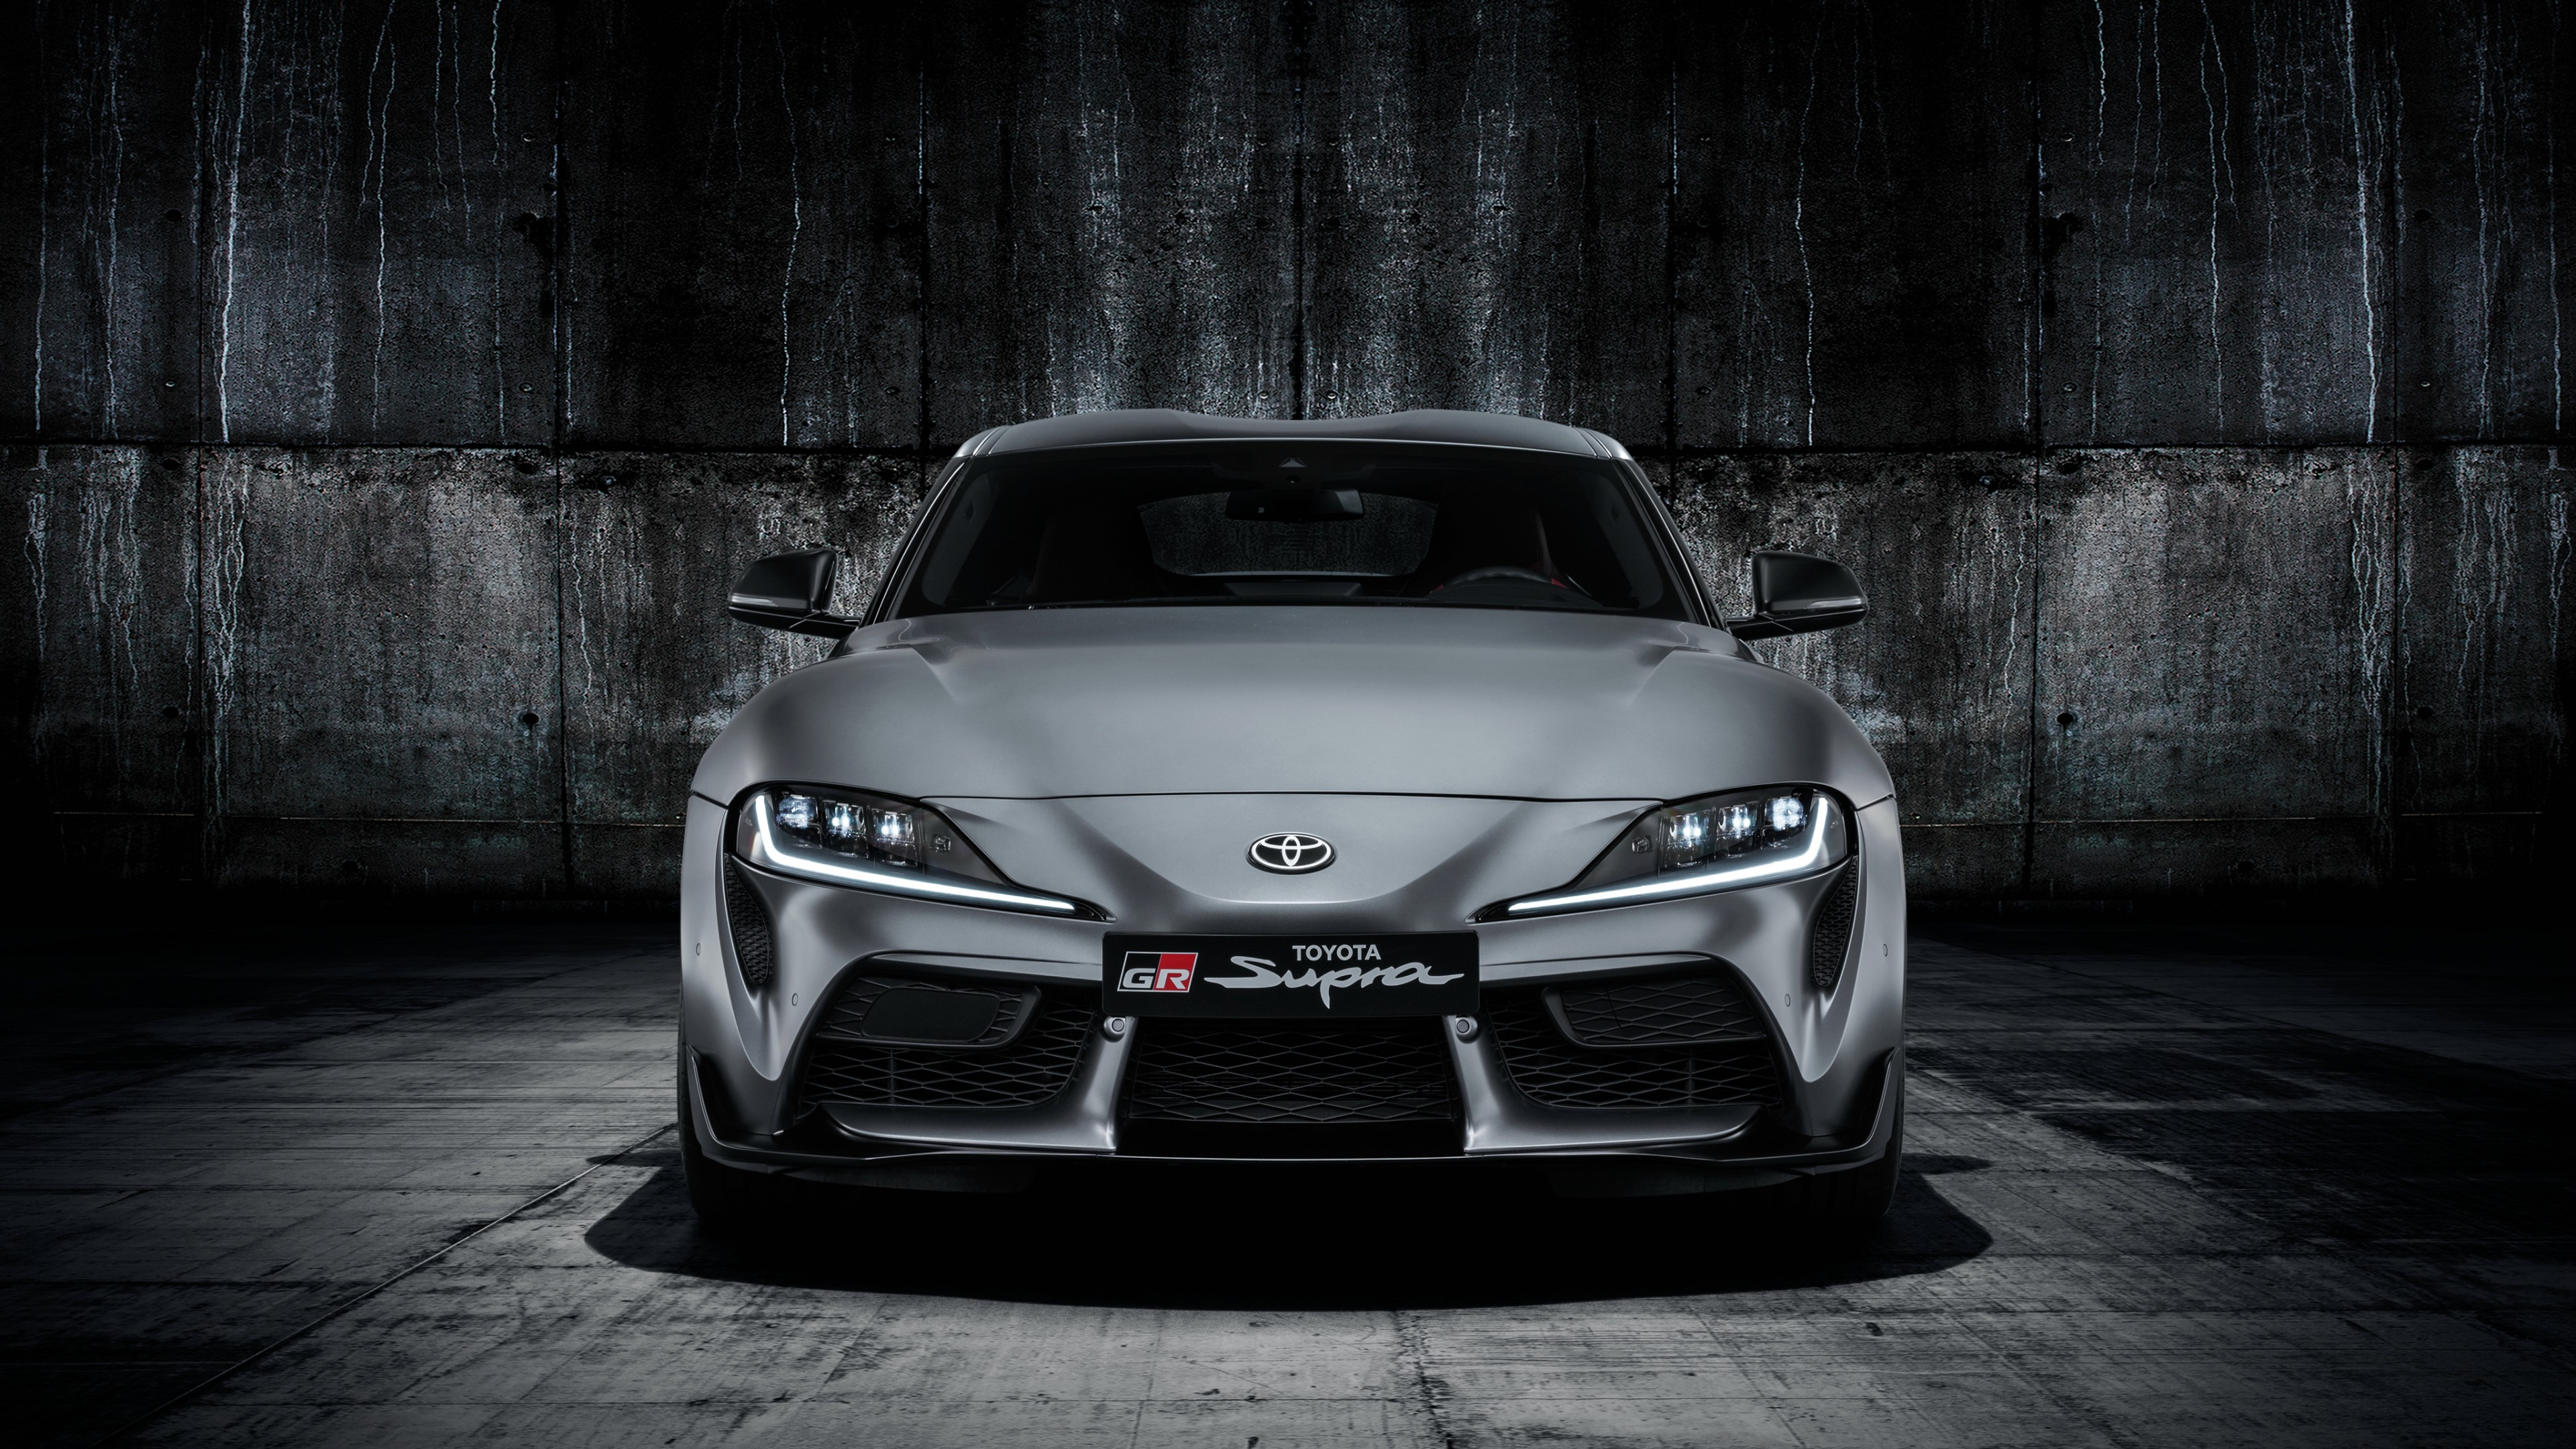 Toyota Ft 1 >> Toyota GR Supra A90 Edition 2019 4K 3 Wallpaper | HD Car ...